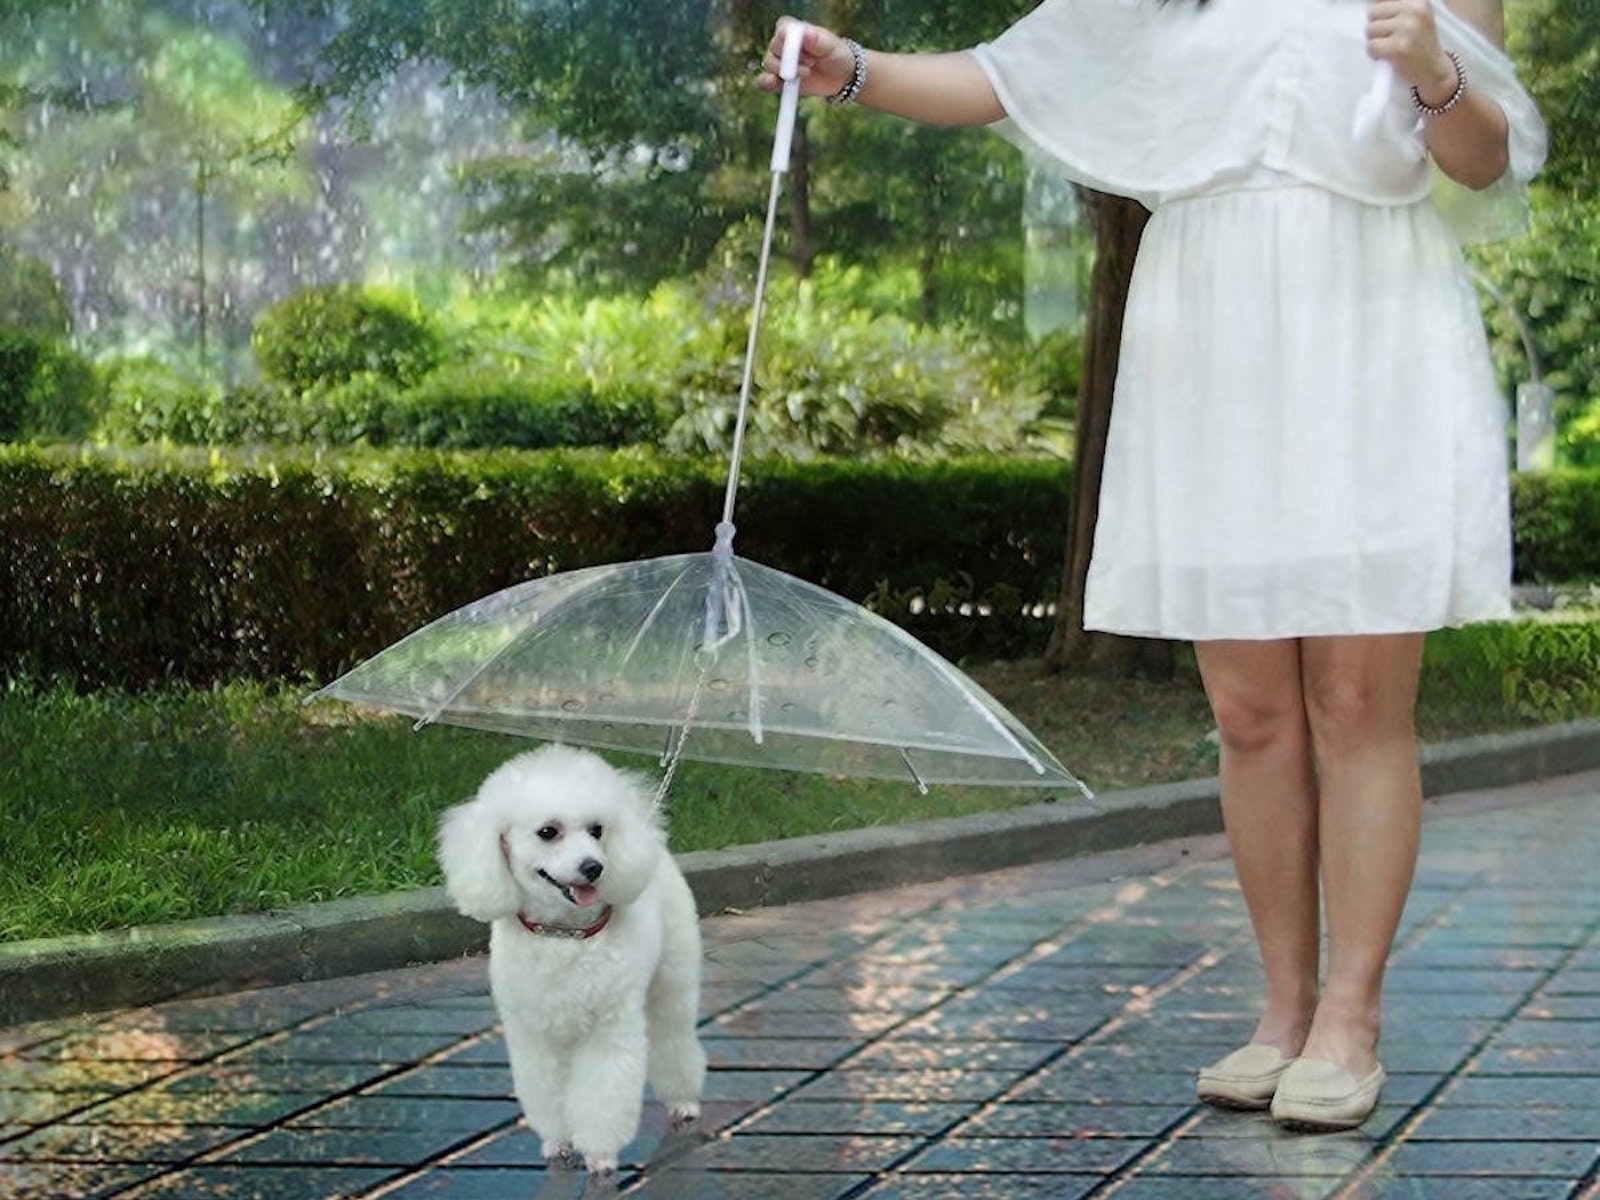 A tiny dog umbrella for staying dry during rainy walks